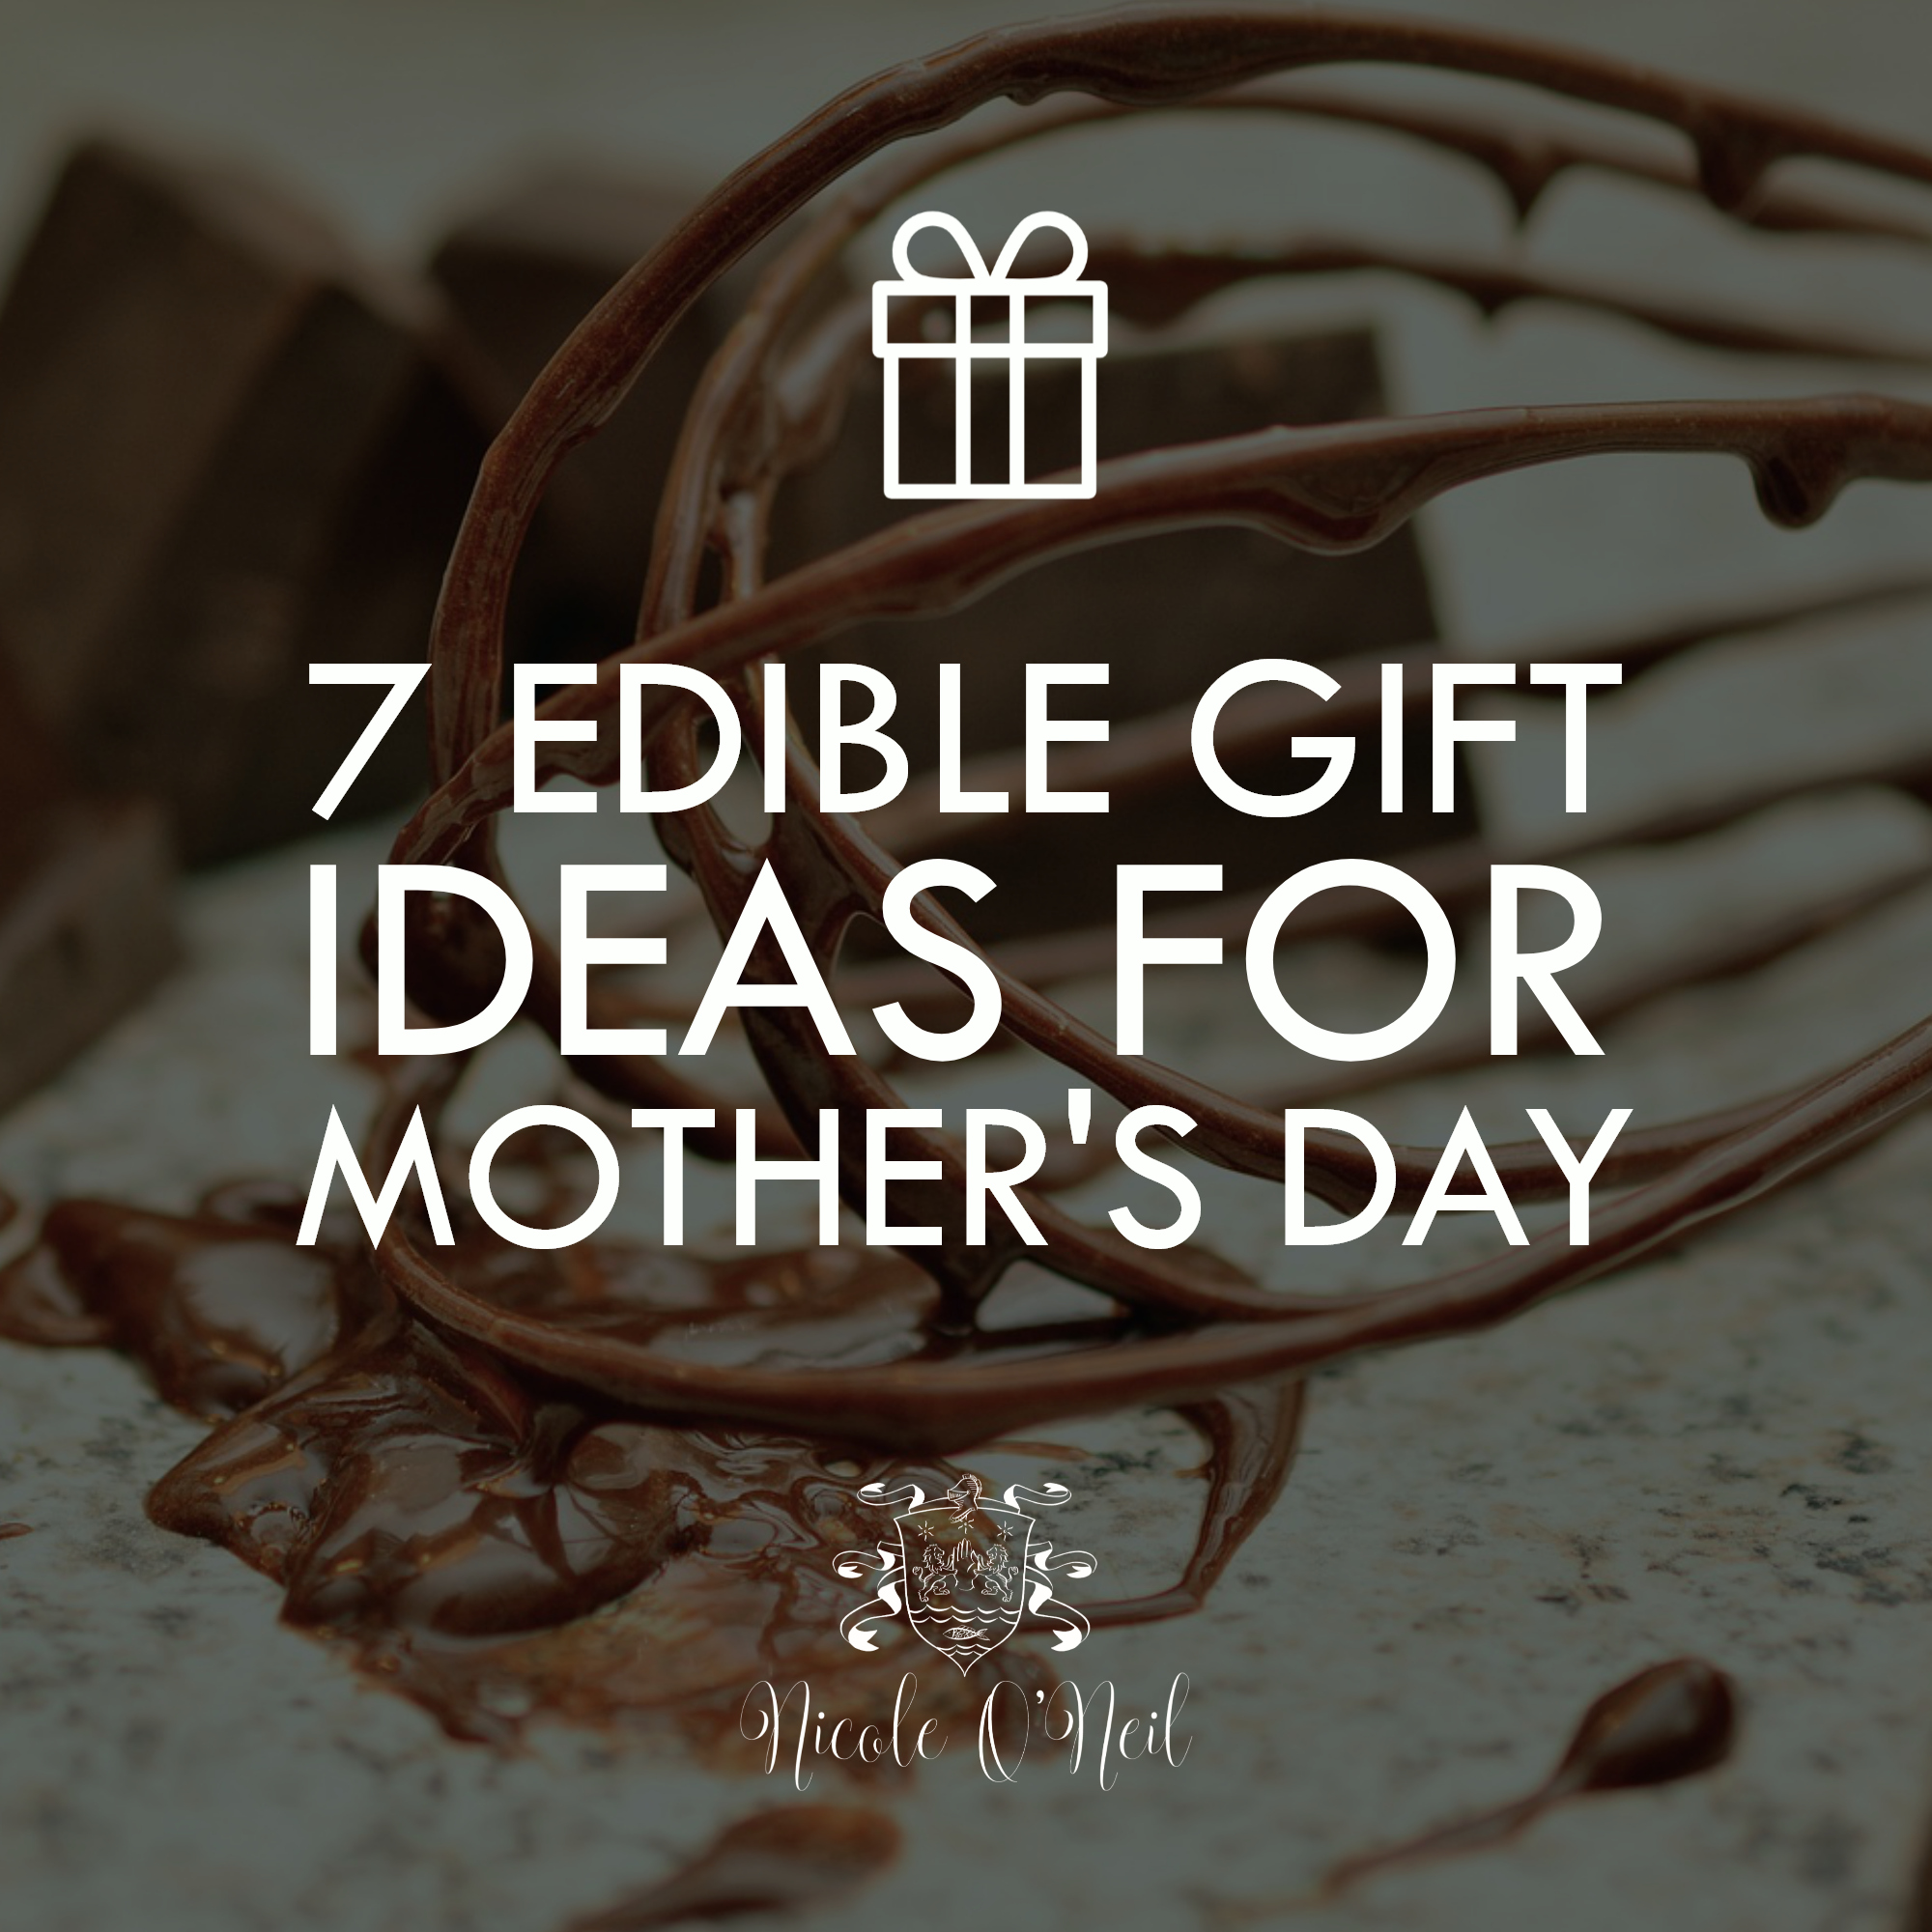 Looking for the perfect gift for the Mum who has everything - or the Mum who doesn't want anything at all? These 7 Edible Gift Ideas are perfect for every Mum - and delicious too!